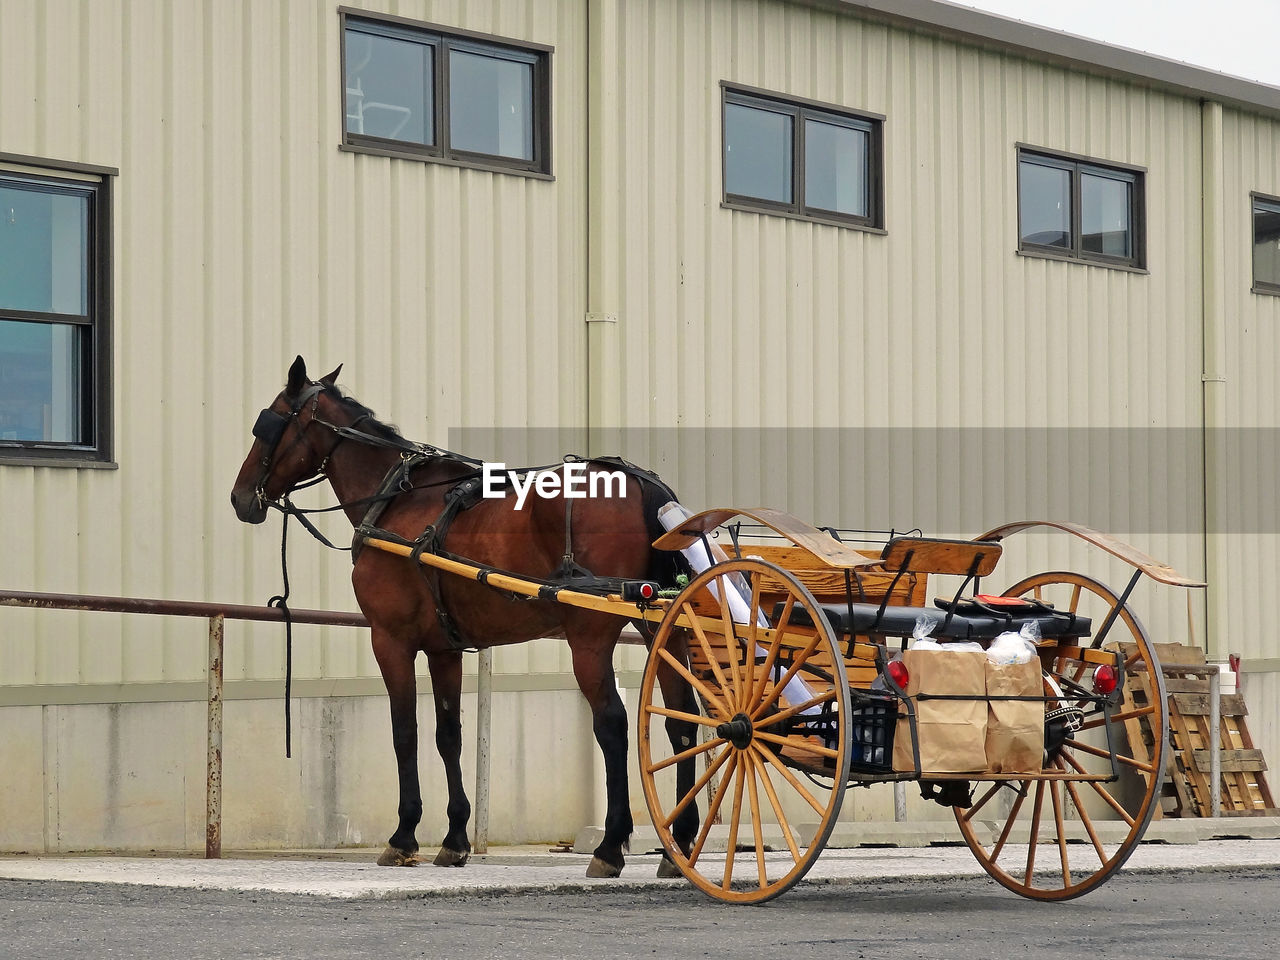 Horse carriage parked by building